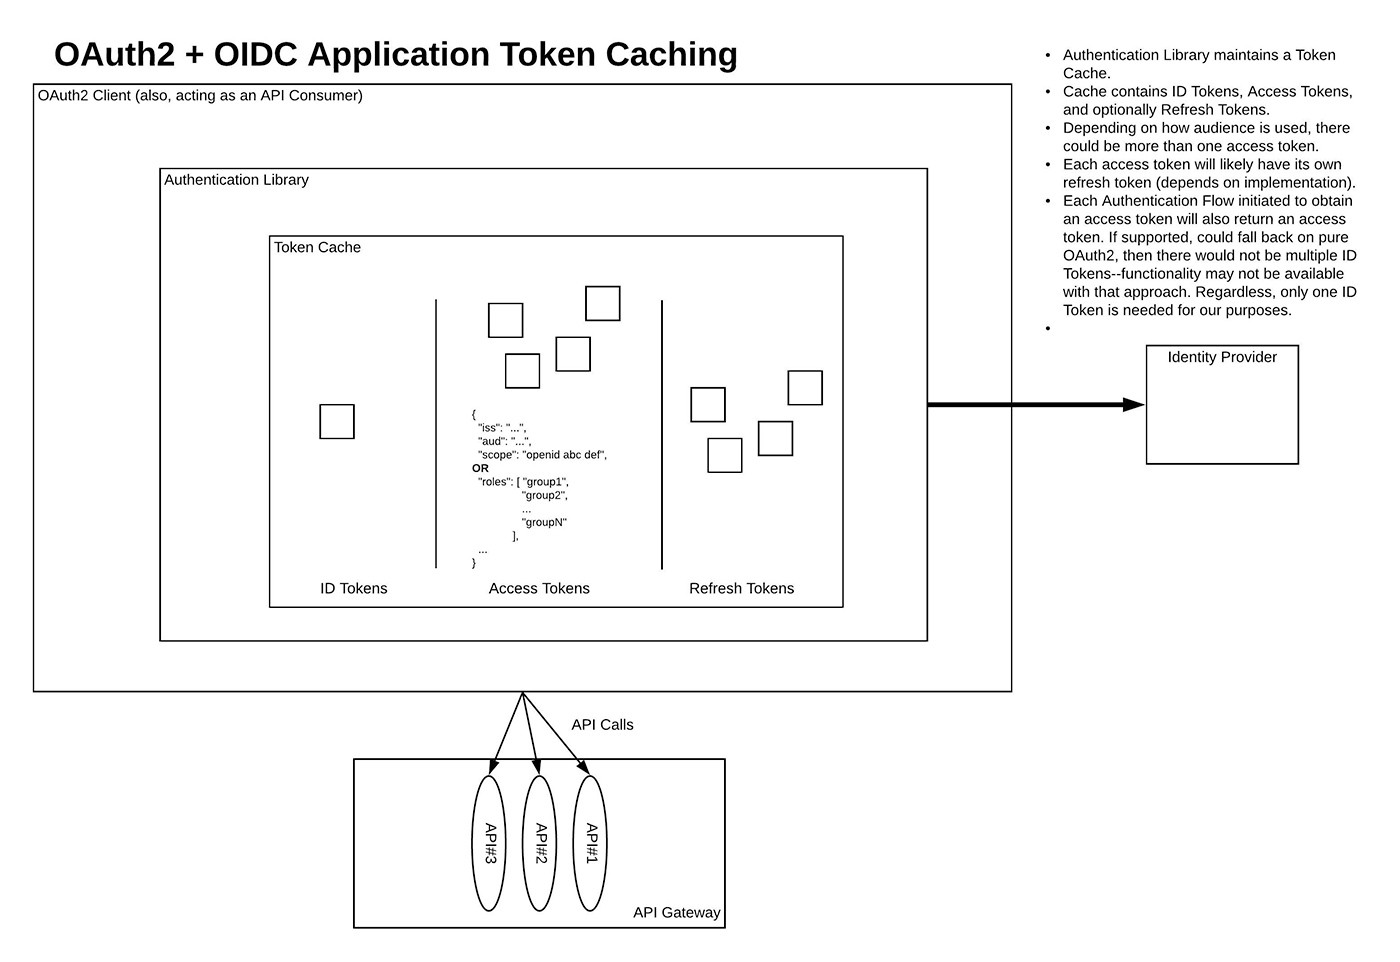 OAUTH2 ACCESS TOKEN USAGE STRATEGIES FOR MULTIPLE RESOURCES